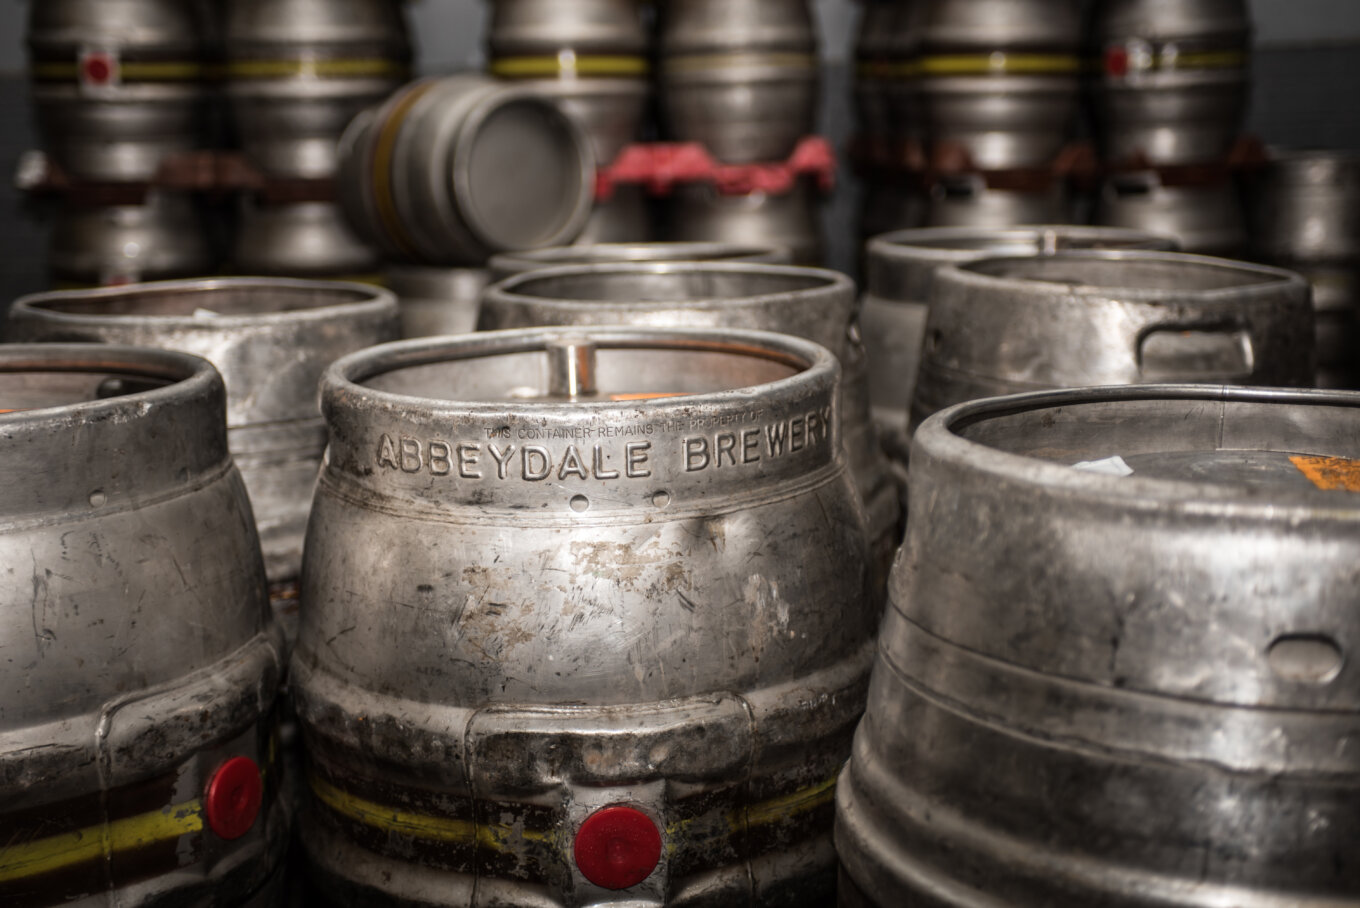 Abbeydale Brewery casks